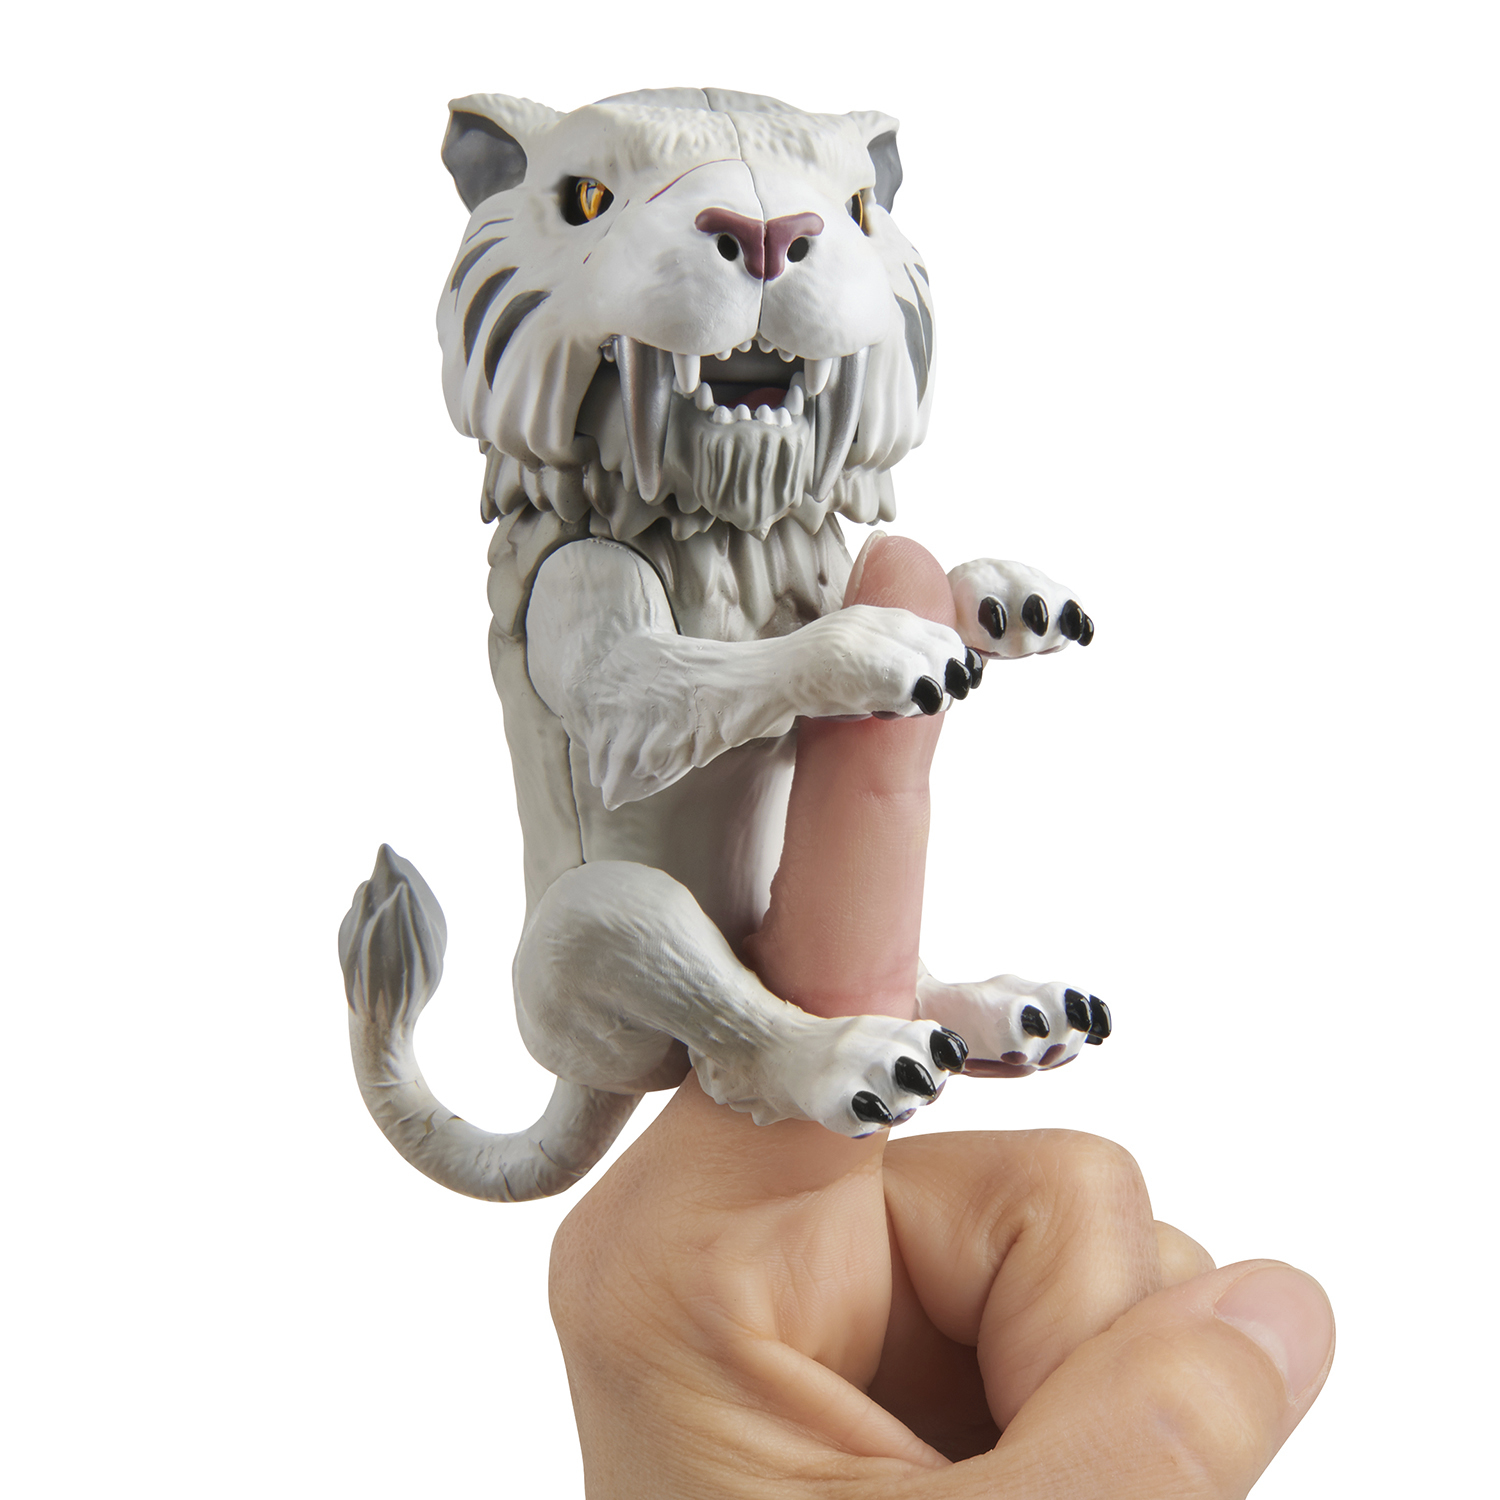 Untamed Sabre Tooth Tiger by Fingerlings – Silvertooth (Silver) – Interactive Collectible Toy – By WowWee